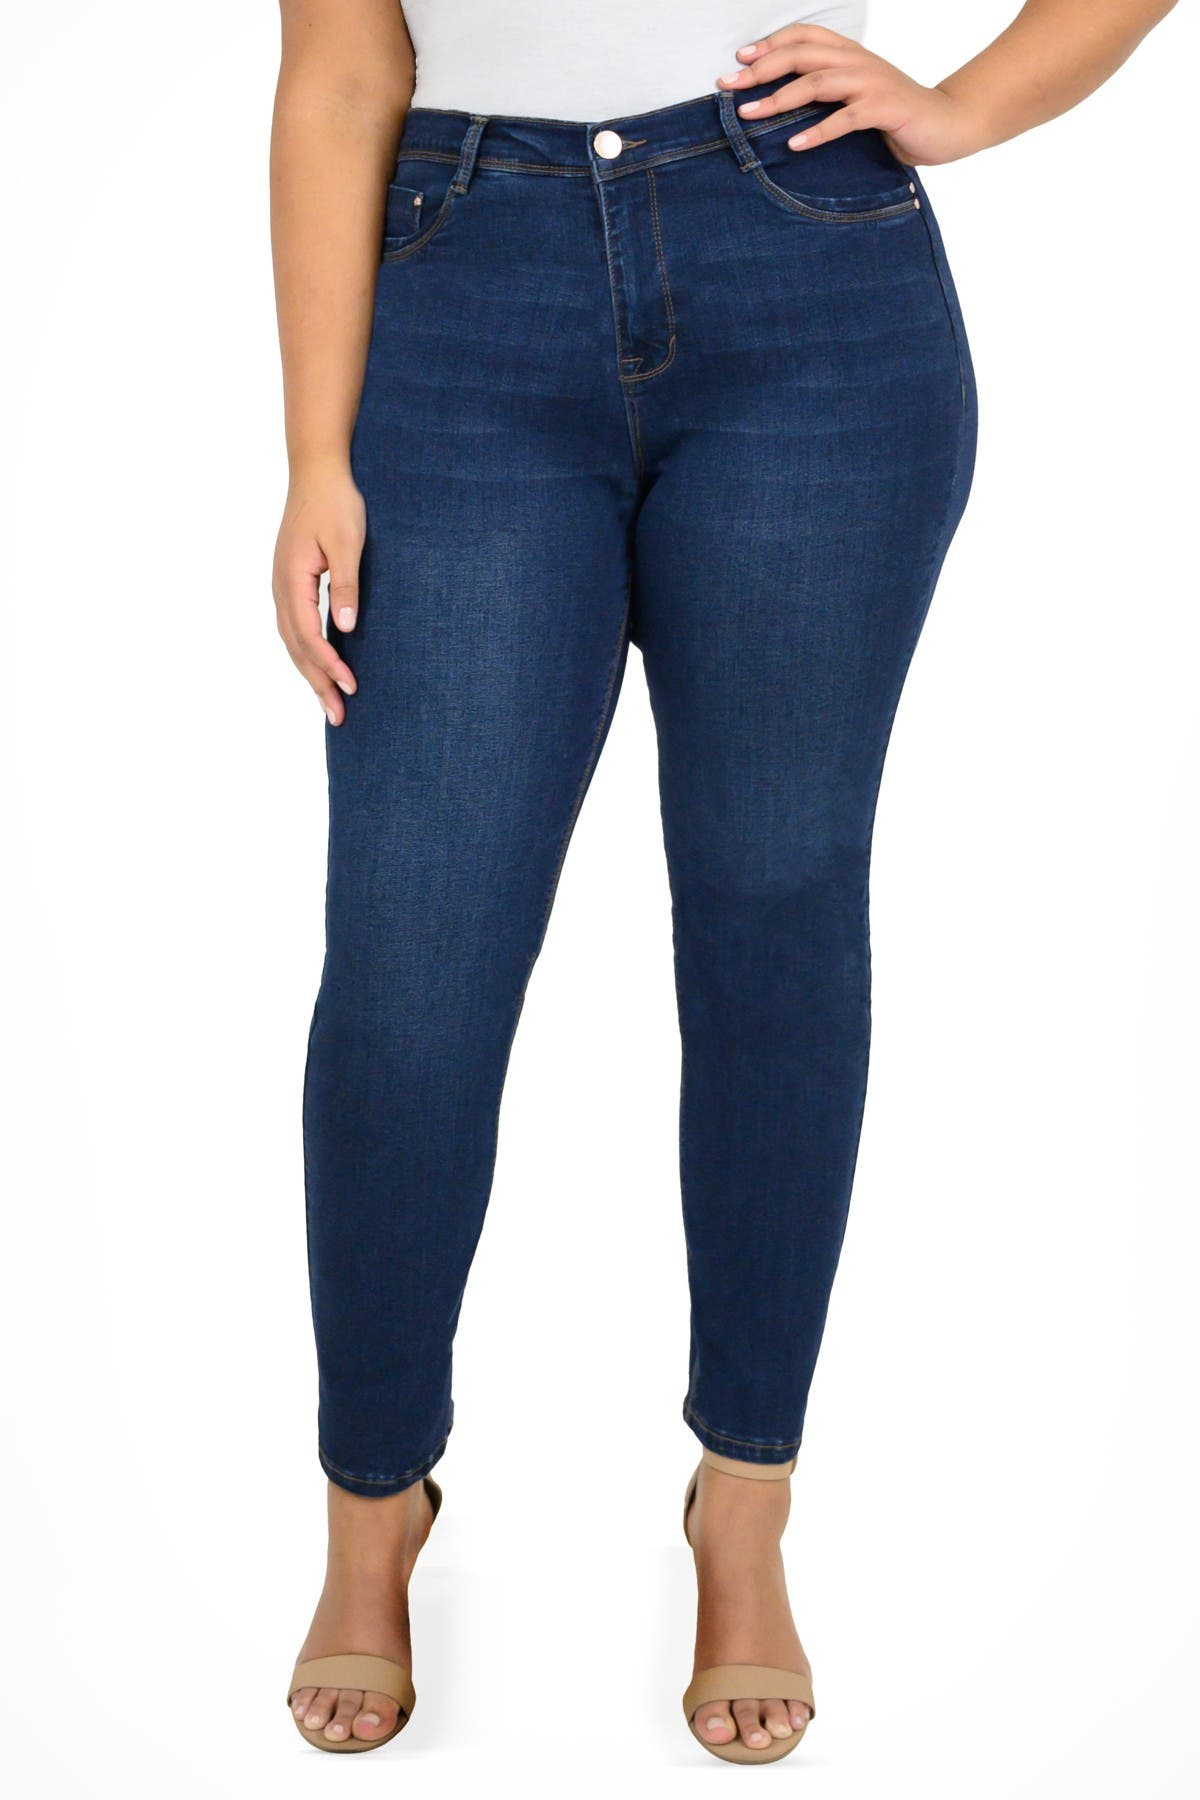 Image of Curve Appeal Straight Leg Jeans